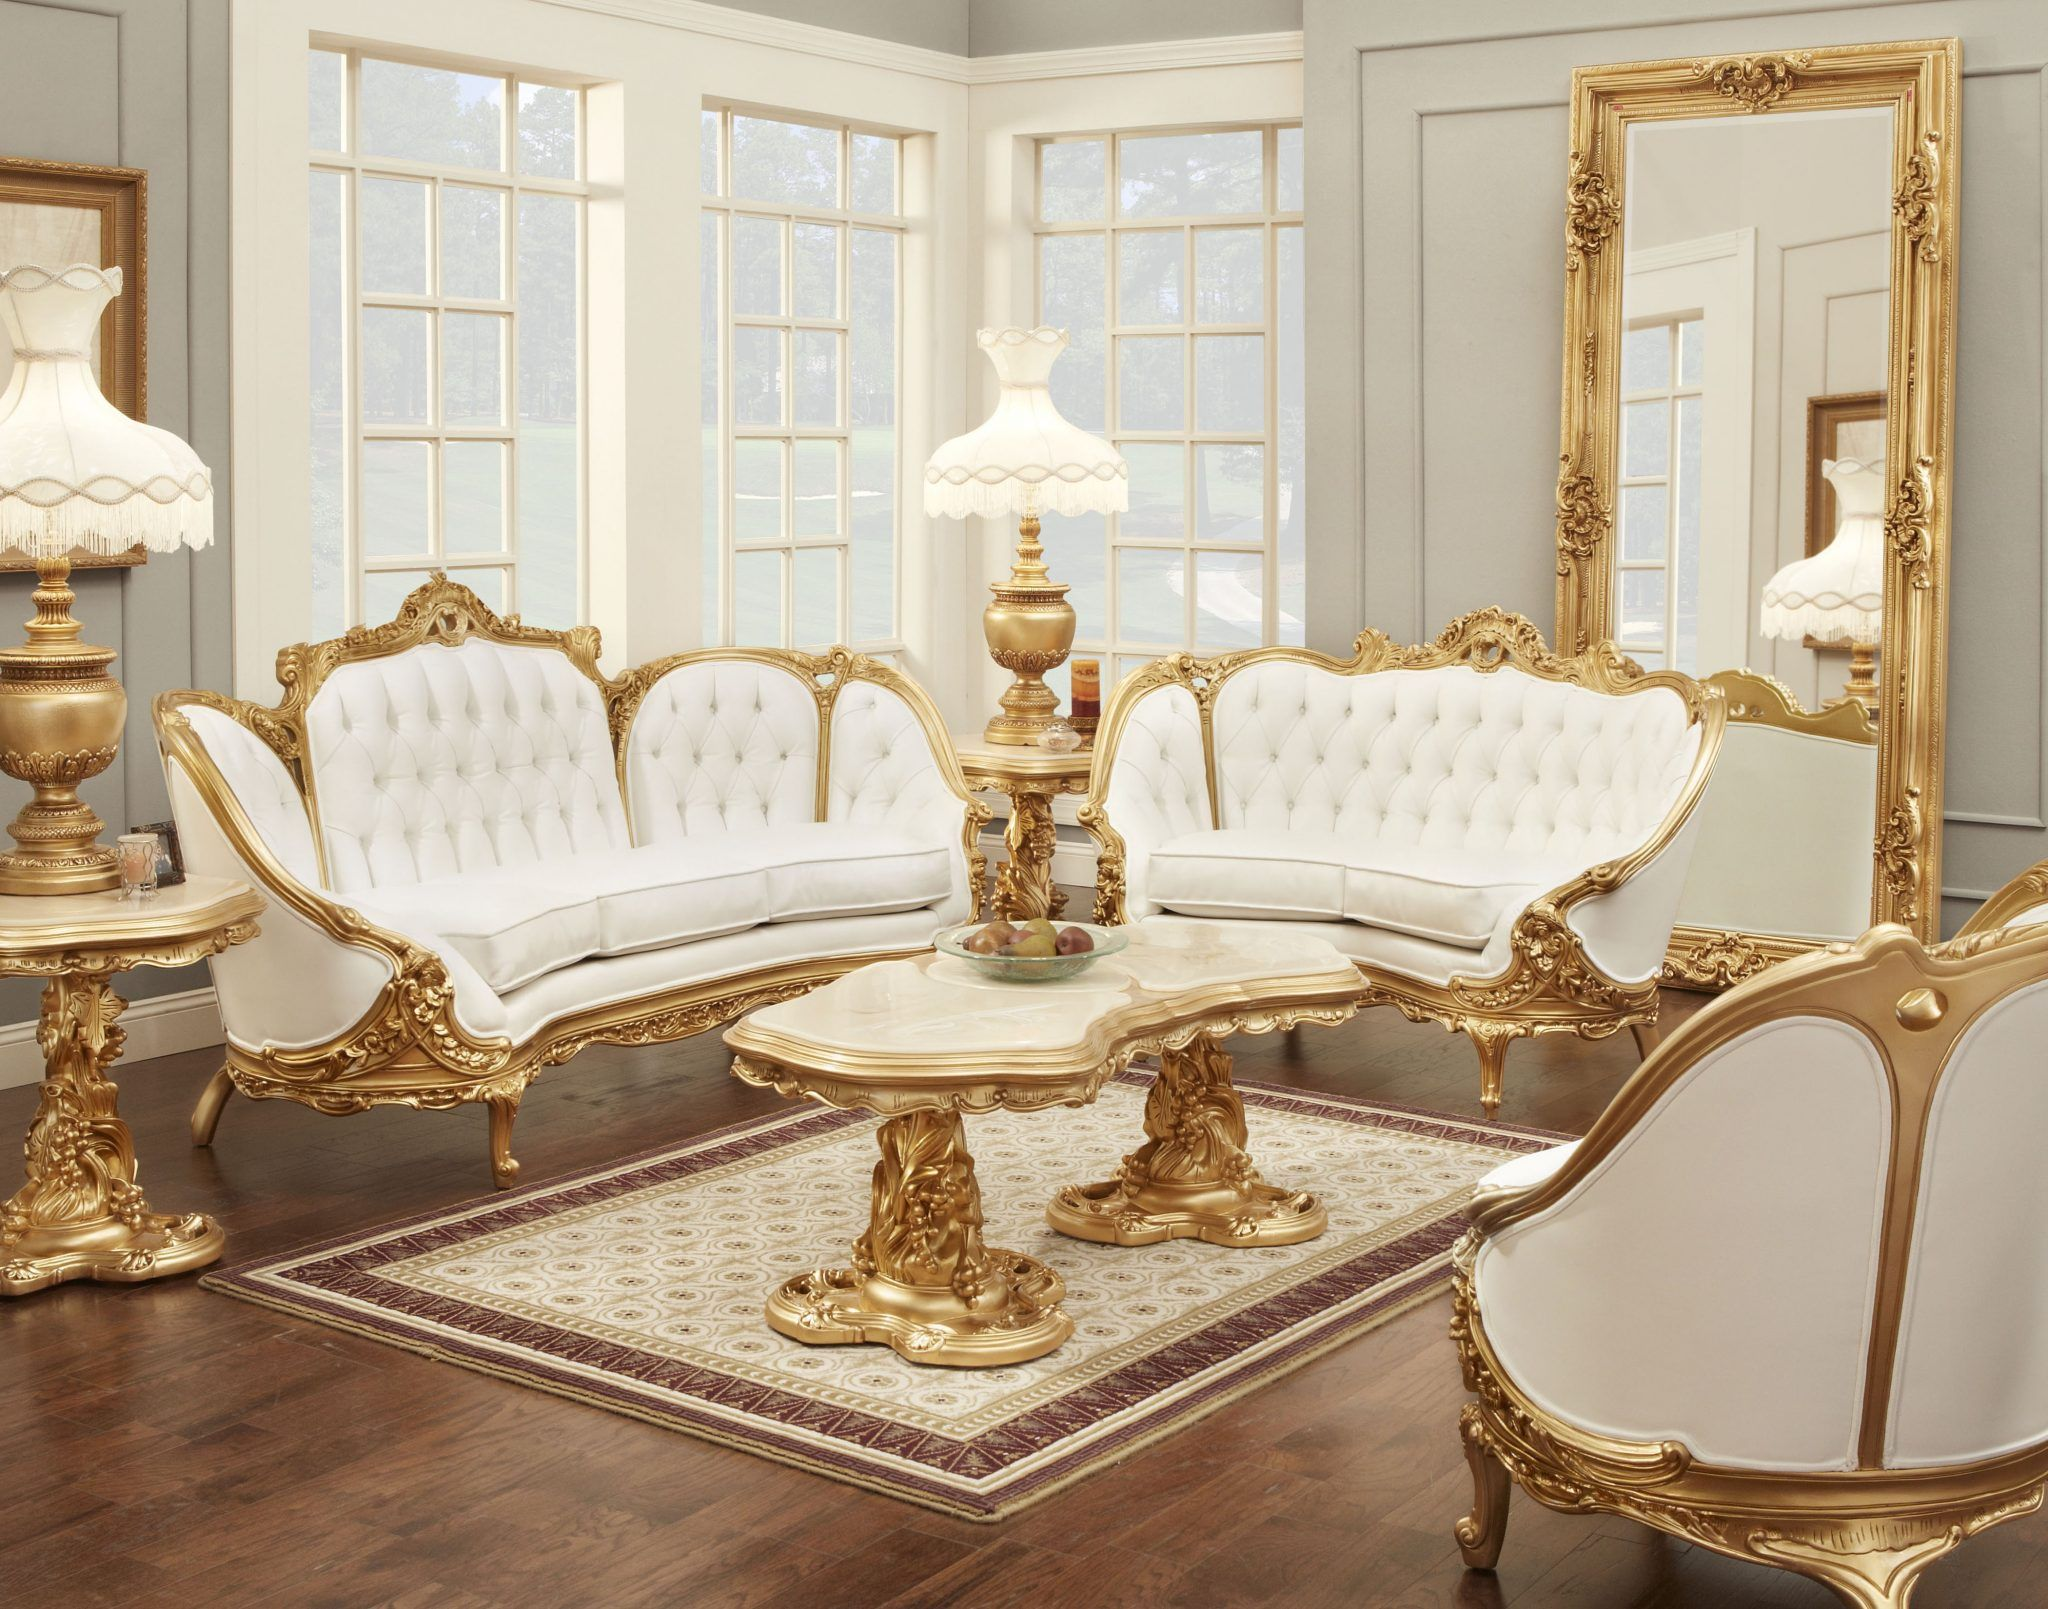 Victorian Living Room Chairs Find The Best Images Of Modern House Decor And Architecture At Https Gold Living Room Victorian Living Room Gold Living Room Decor